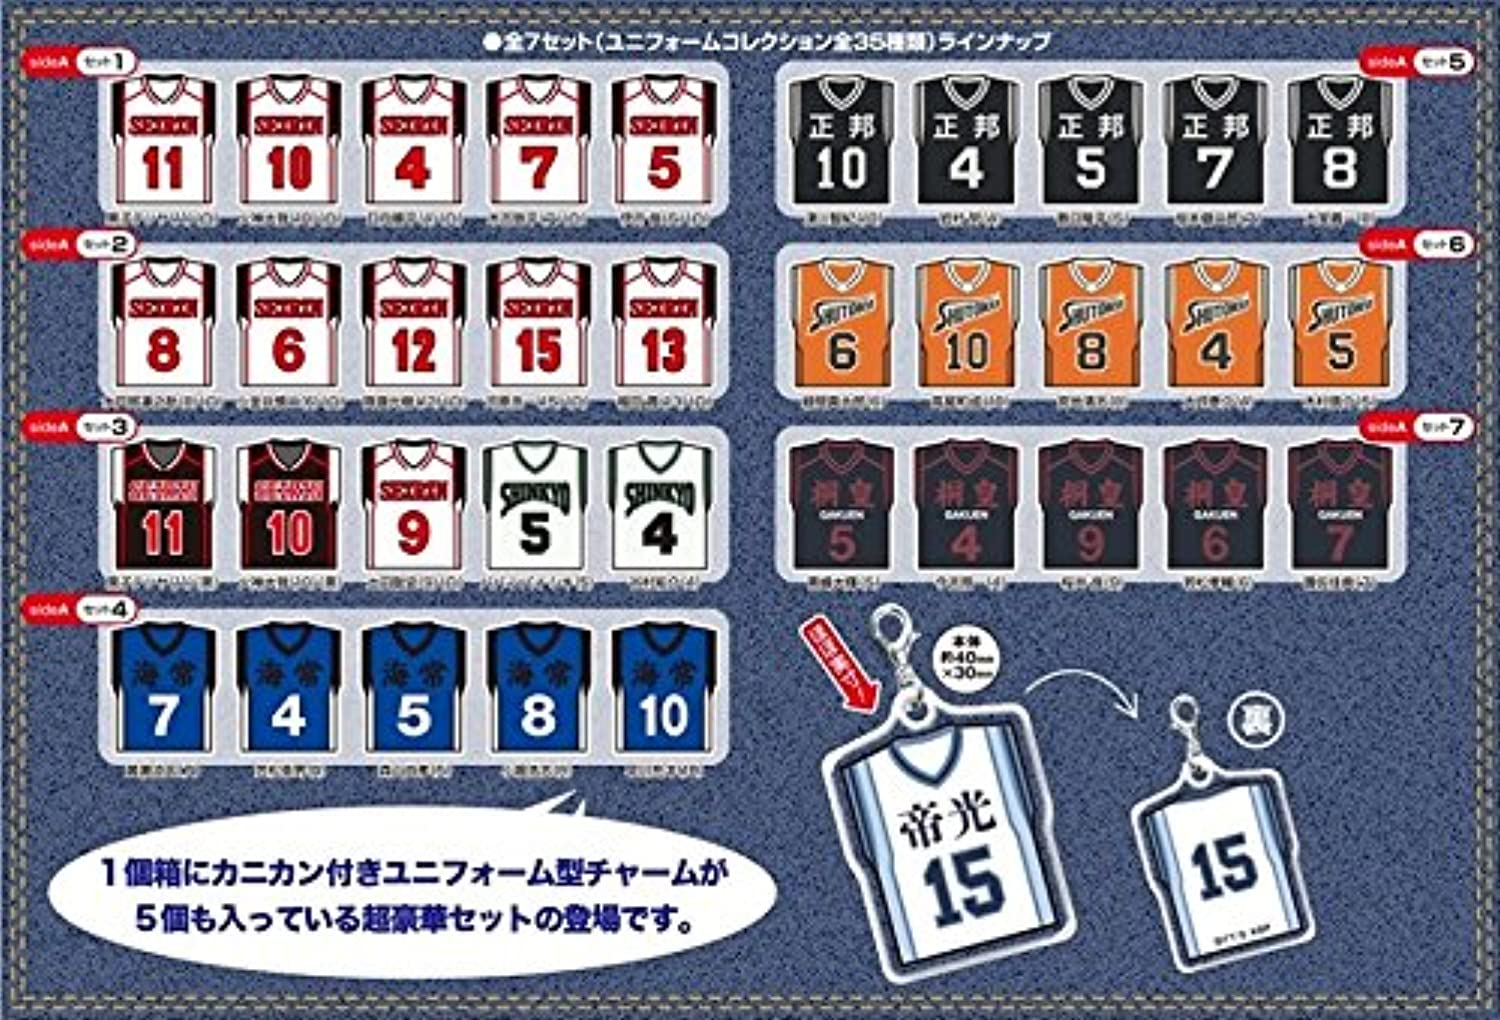 Kuroko's Basketball Uniform Collection side  A BOX products 1BOX = 7 set containing, (a set of 5 pieces), all seven sets